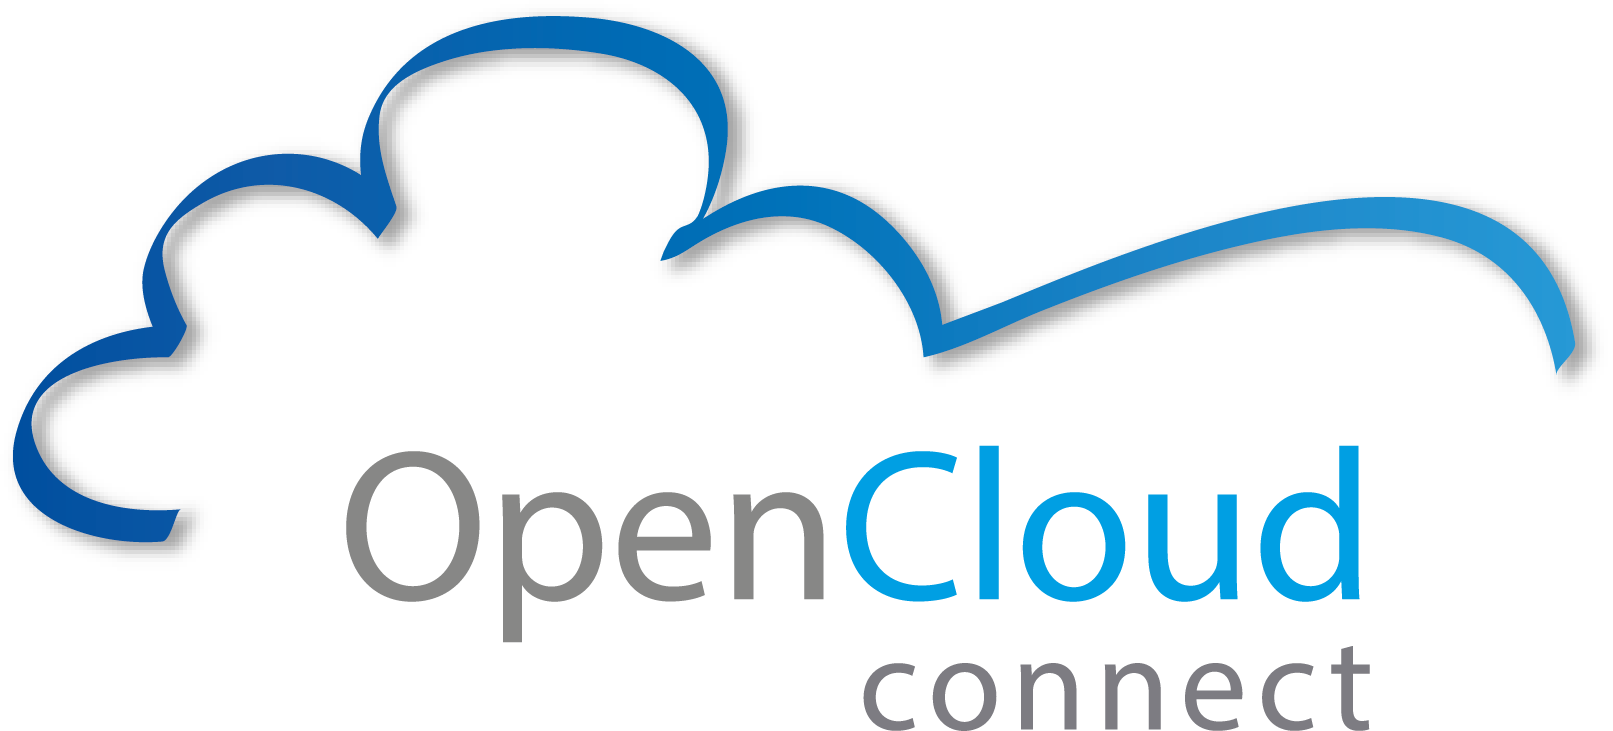 OpenCloud-By-Redhat